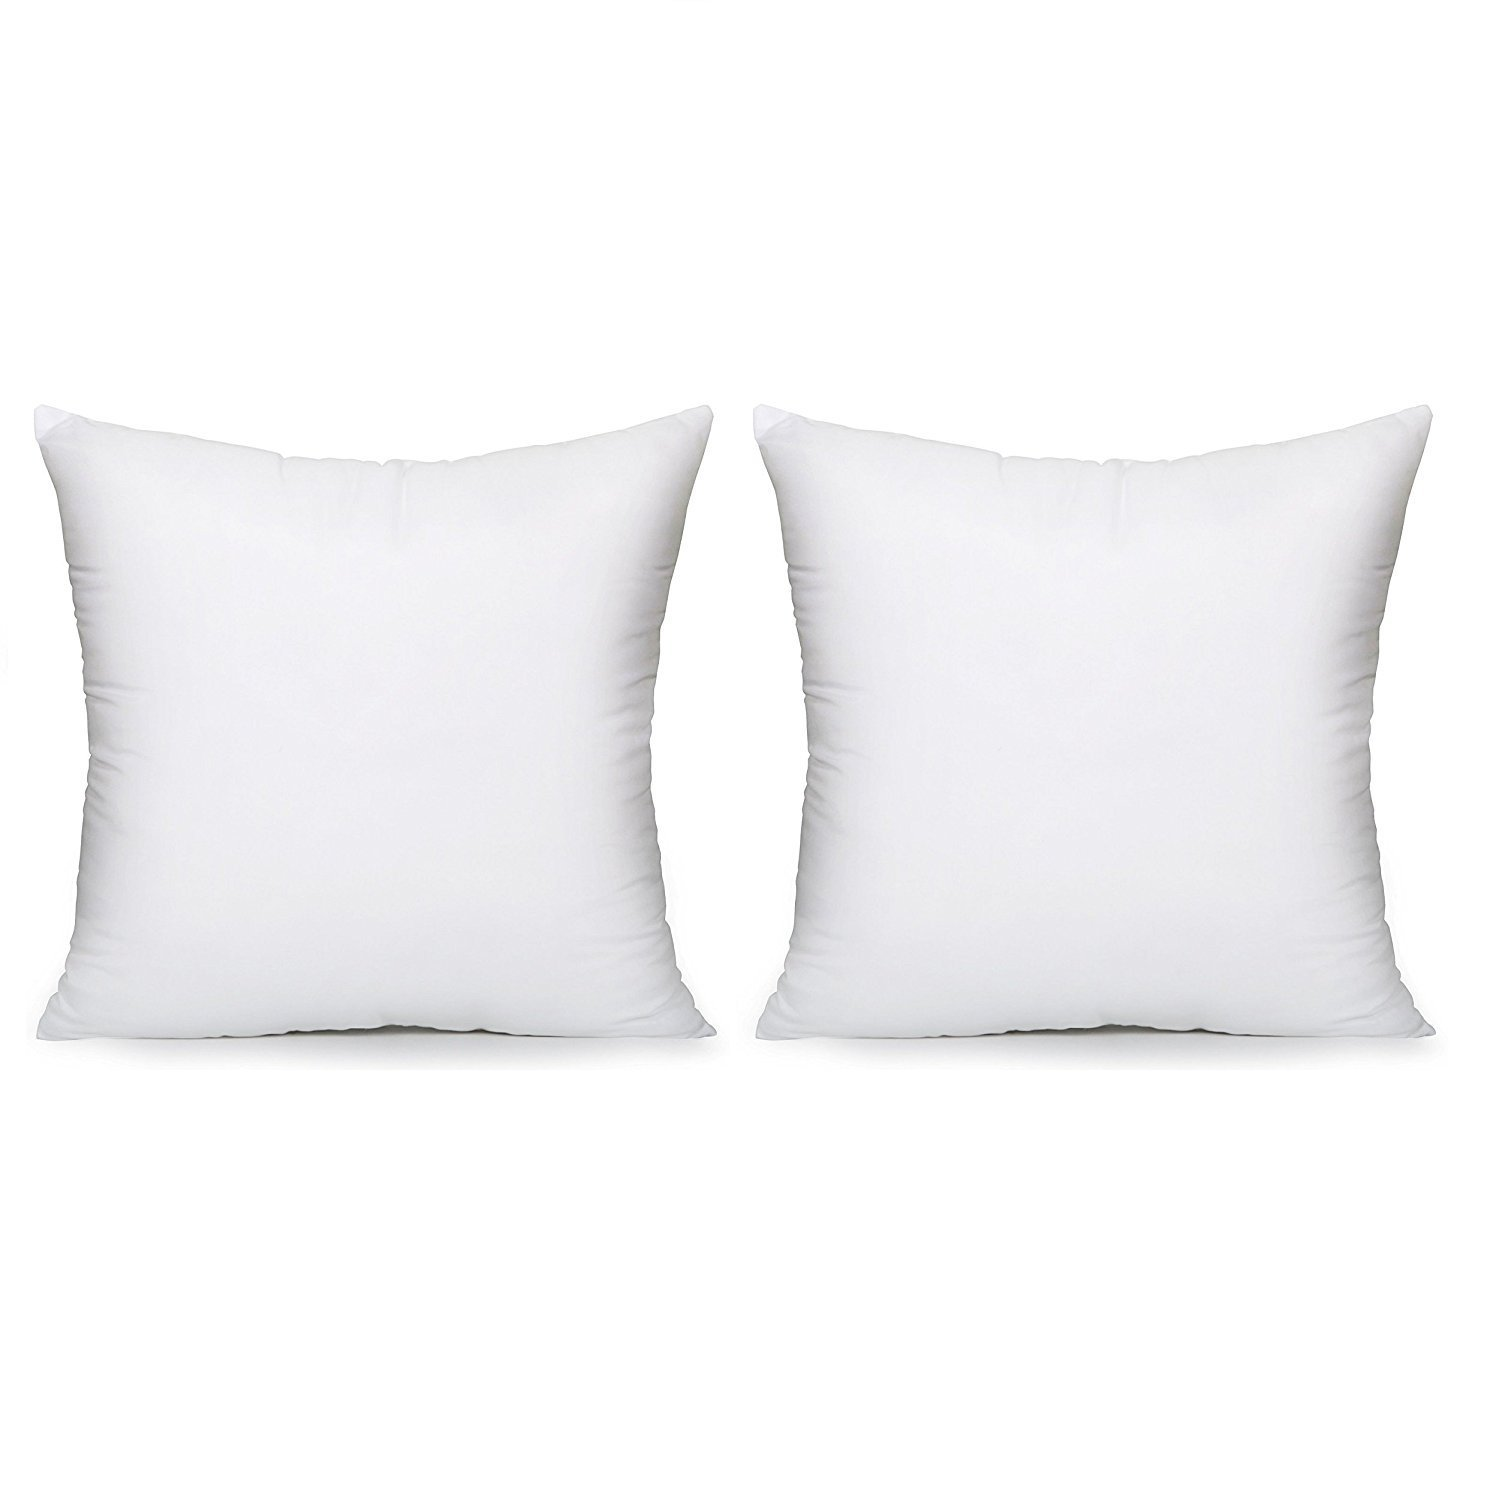 "Image of Acanva Hypoallergenic Pillow Insert Form Cushion Euro Sham, Square, 16"" L x 16"" W, Set of 2"